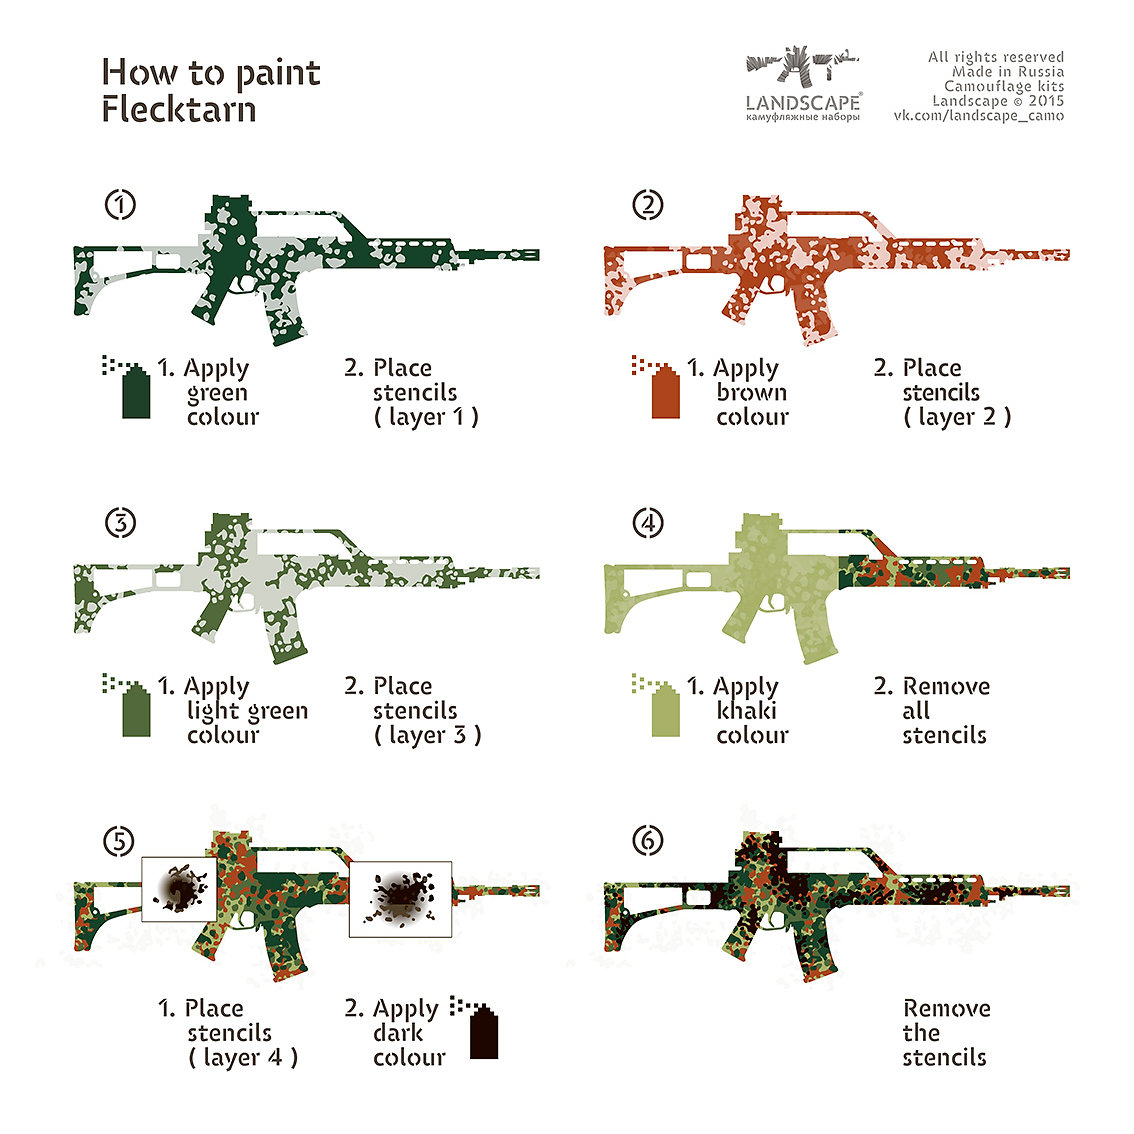 stencils for applying camouflage patterns to competition hunting military firearms or airsoft machine guns assault rifles shotguns carbines rifles